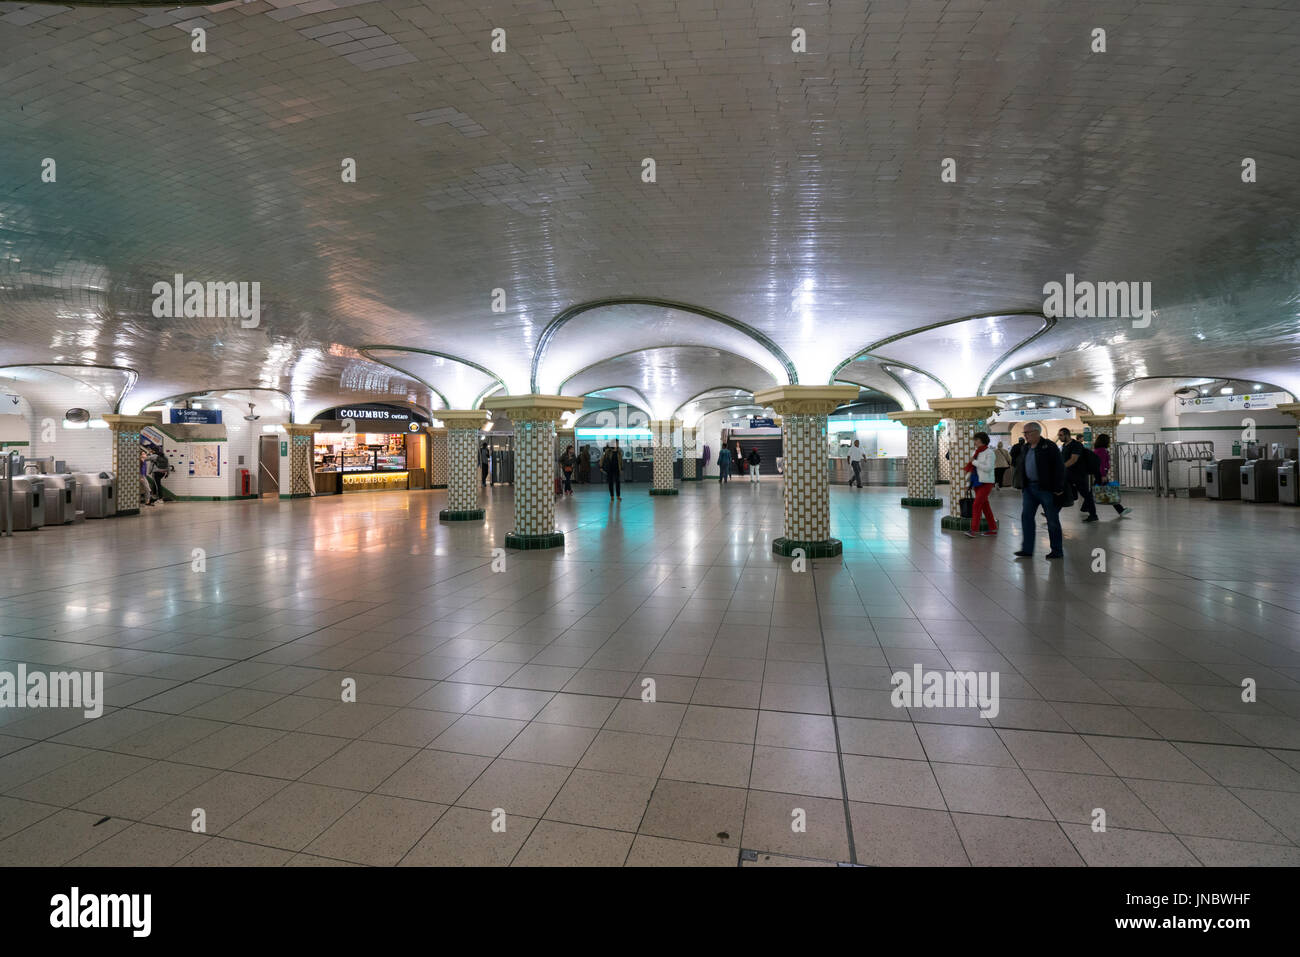 the indoor view of the Saint Lazare metro Station in Paris - Stock Image